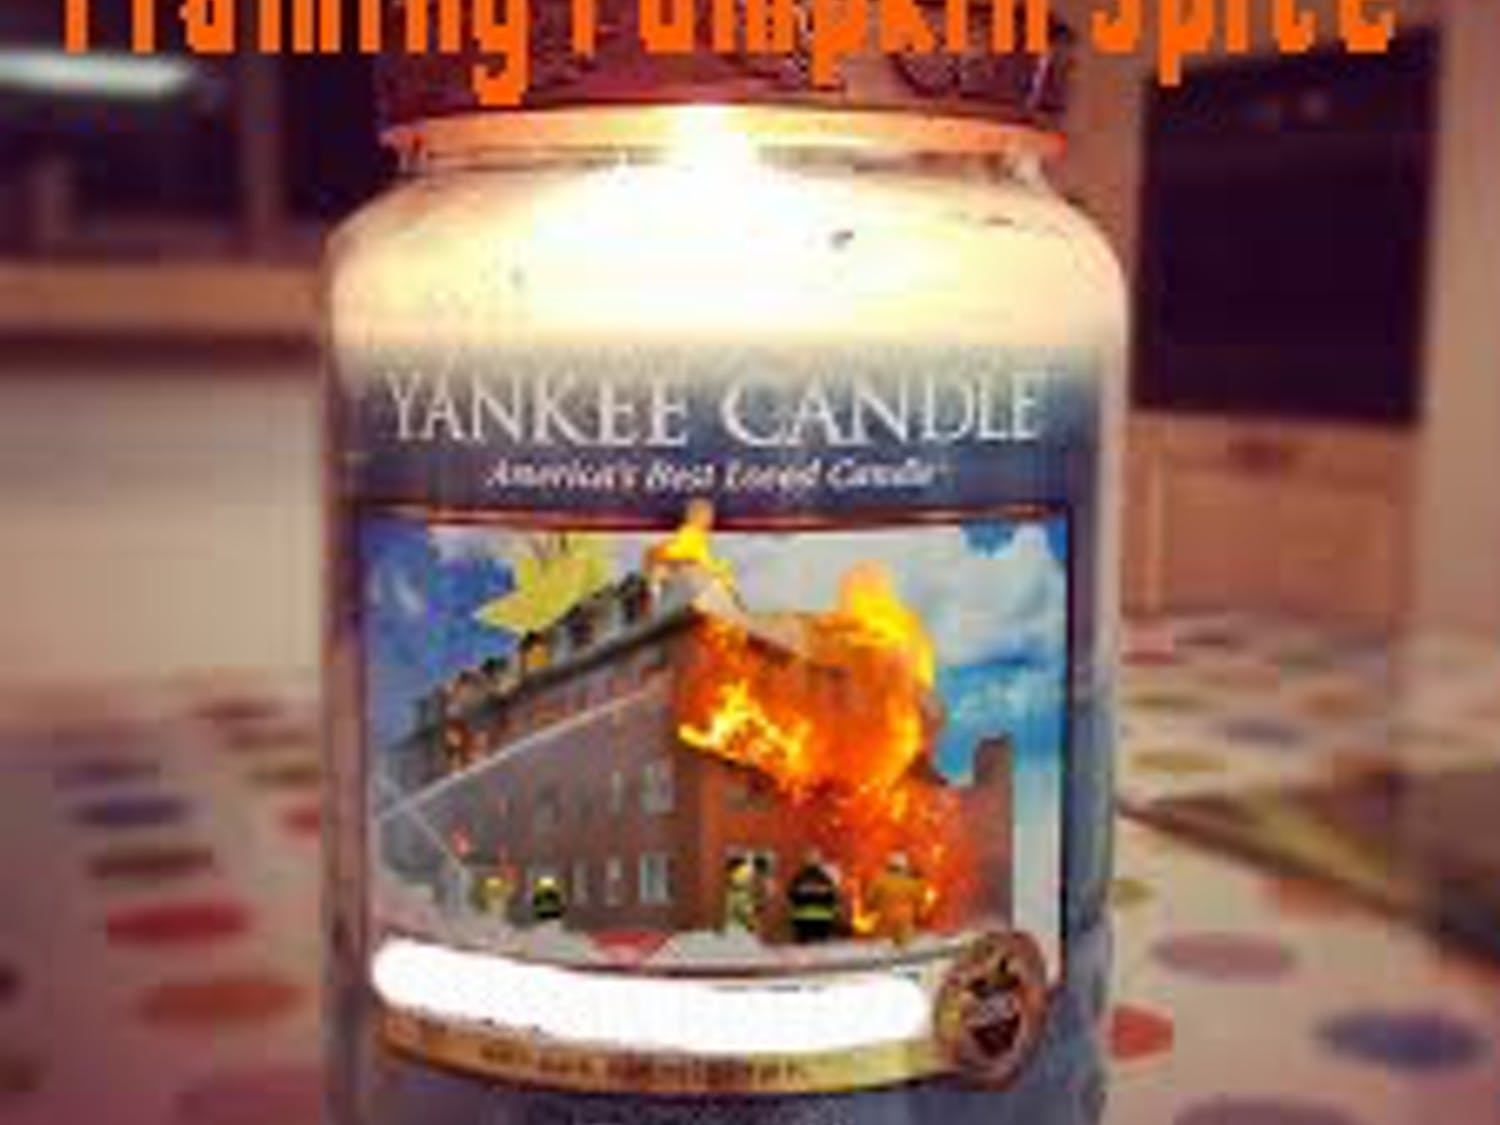 Yankee's new scent features real photos of the fire as it ravaged the factory.